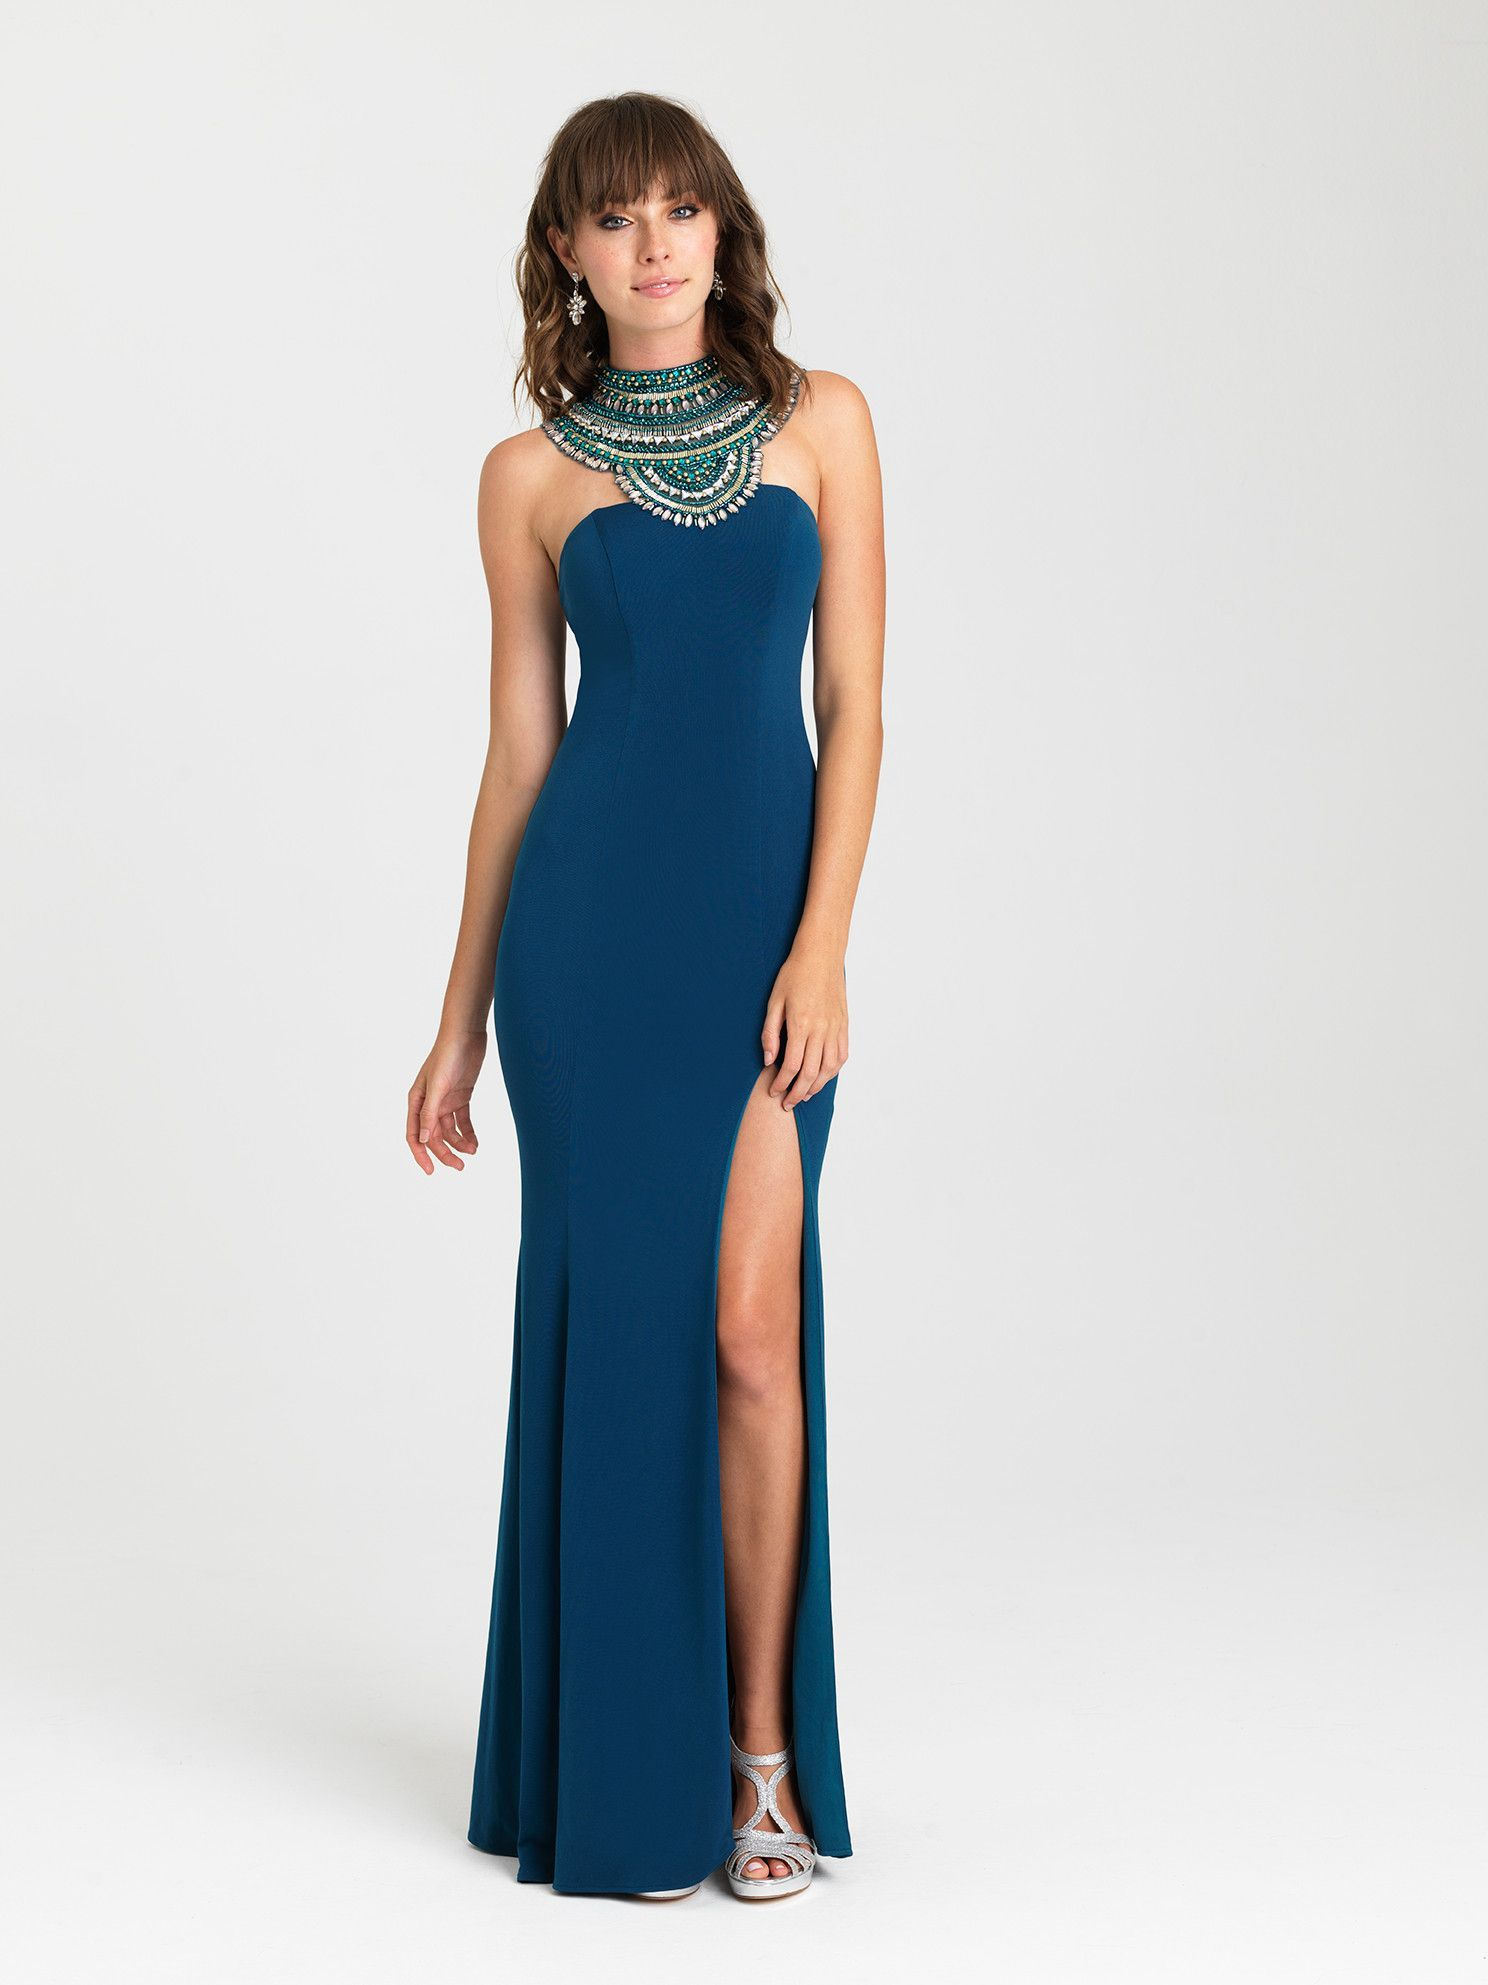 Sleek Evening Gowns Fashion Dresses